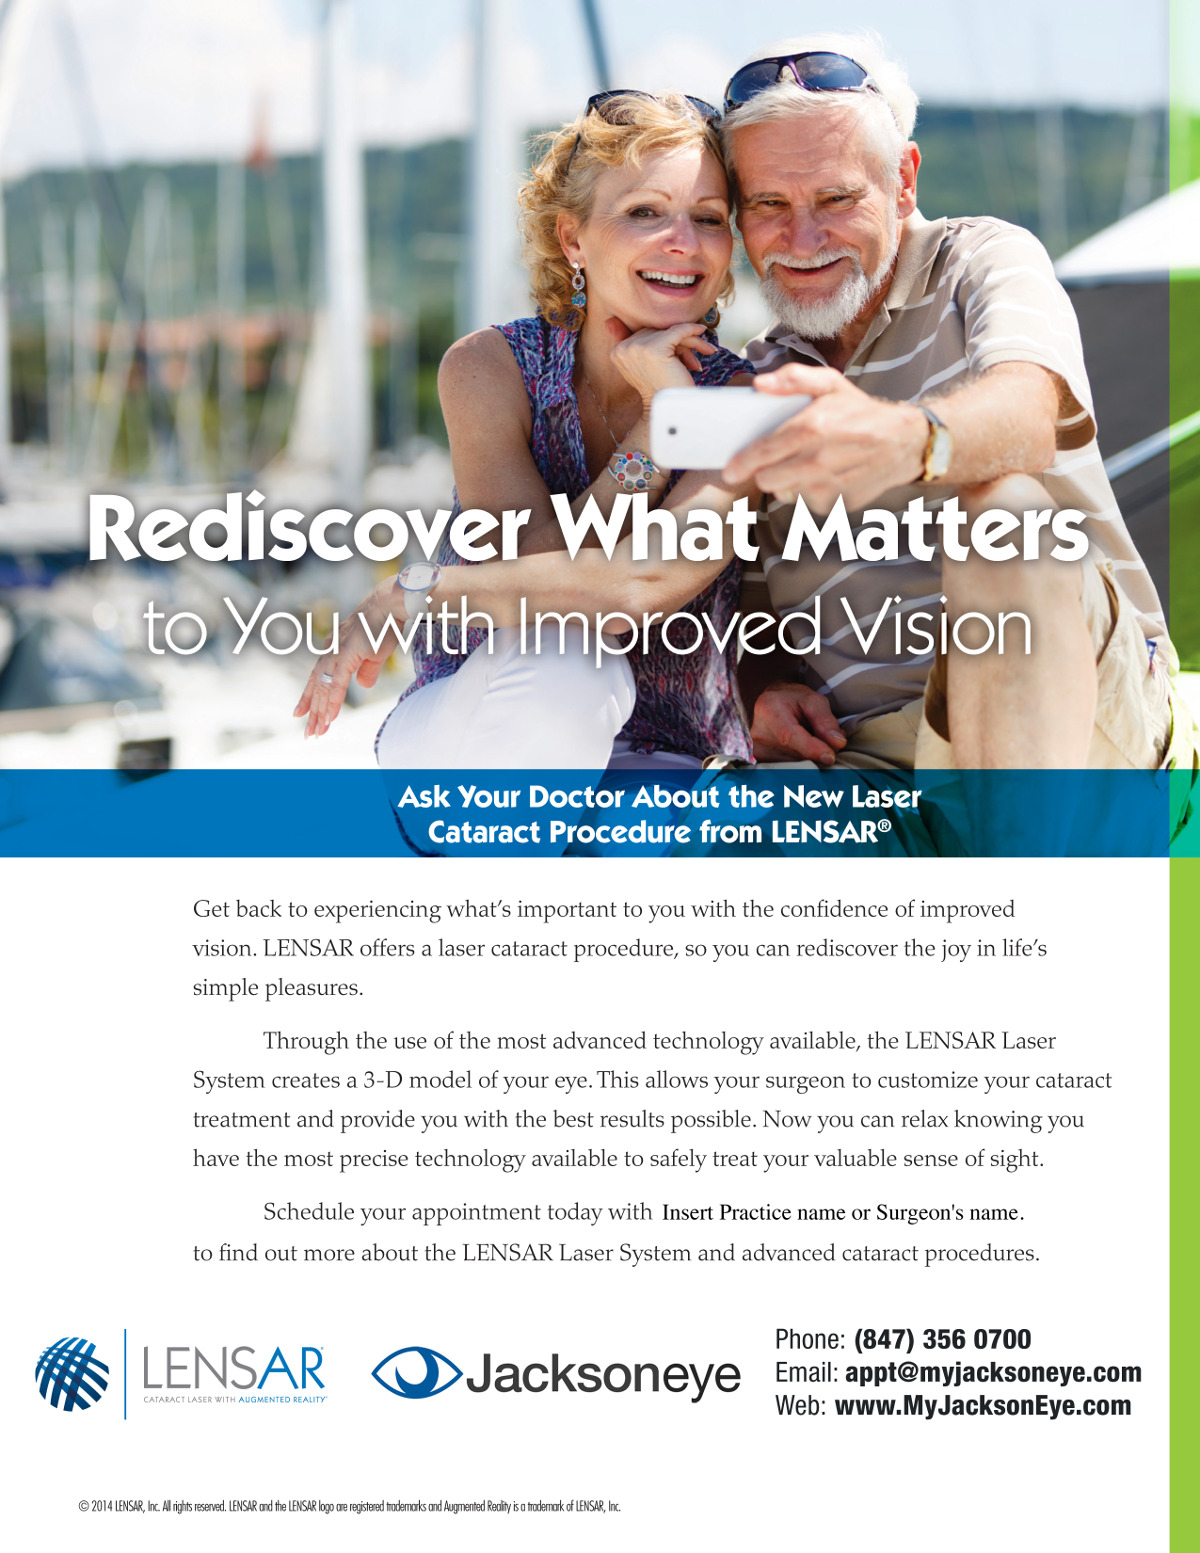 Jacksoneye LENSAR Cataract Surgery Ad with a couple taking selfie